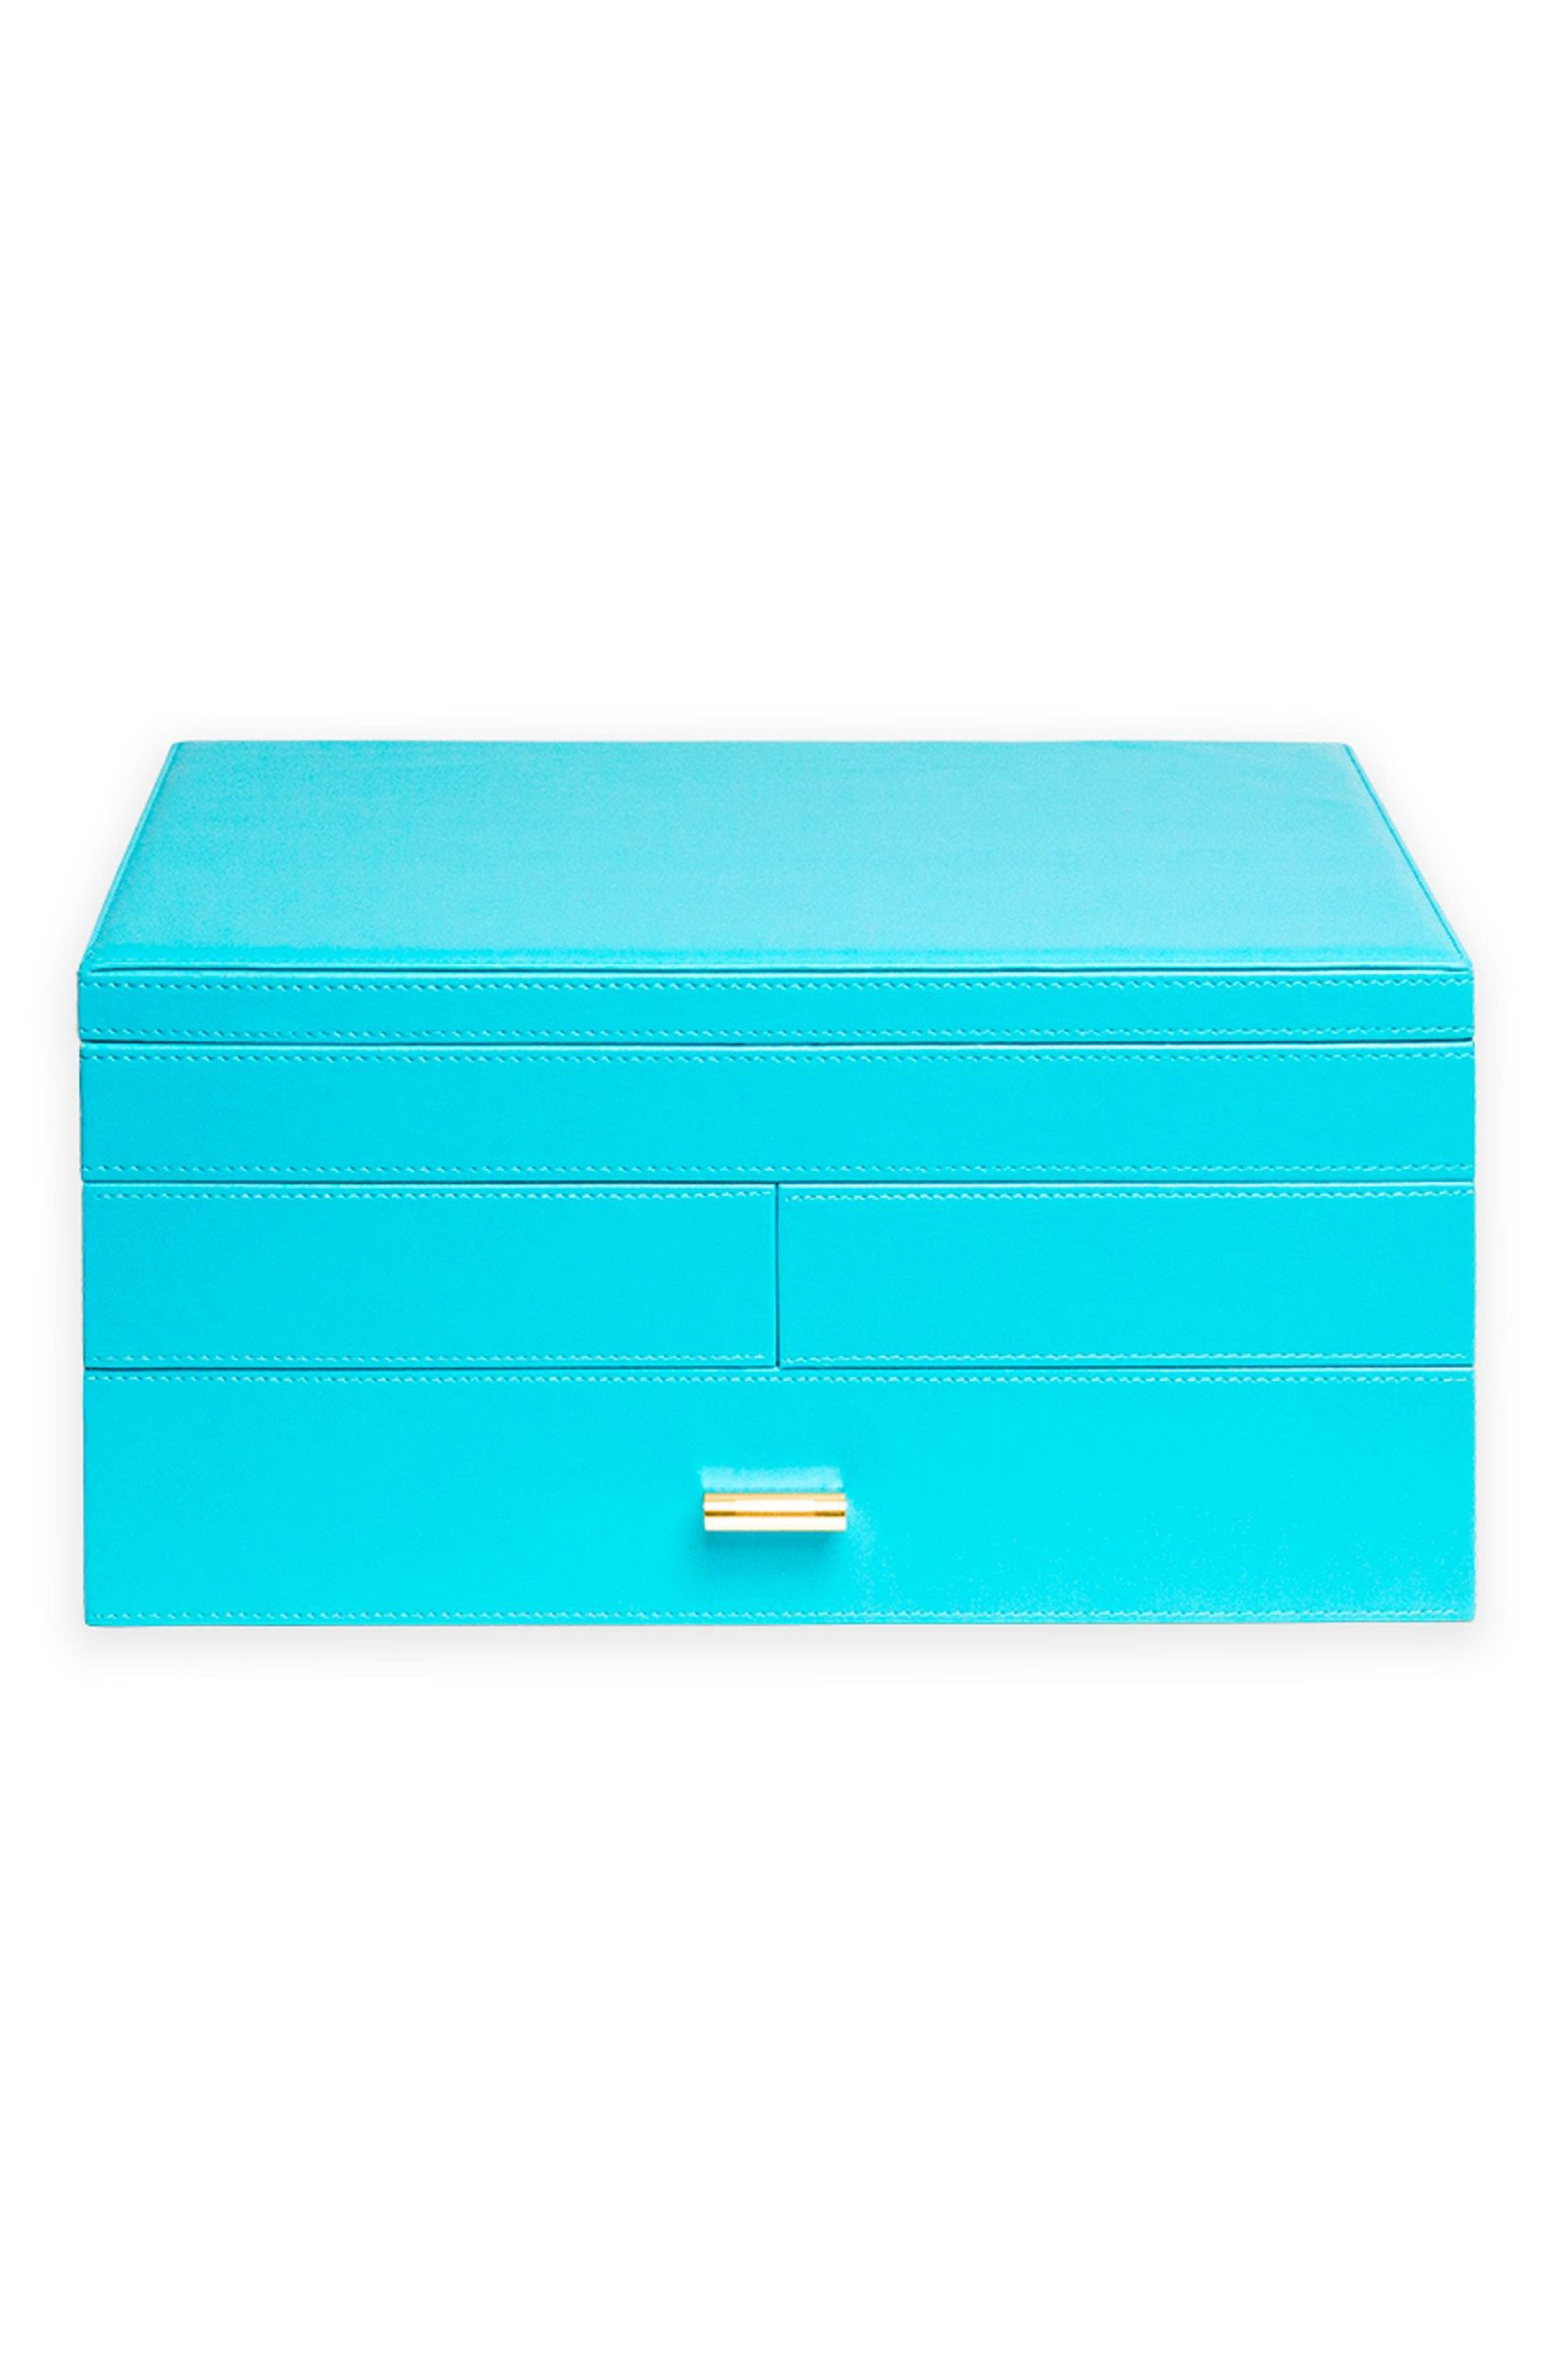 Large Jewelry Box,                         Main,                         color, Turquoise/ Citron